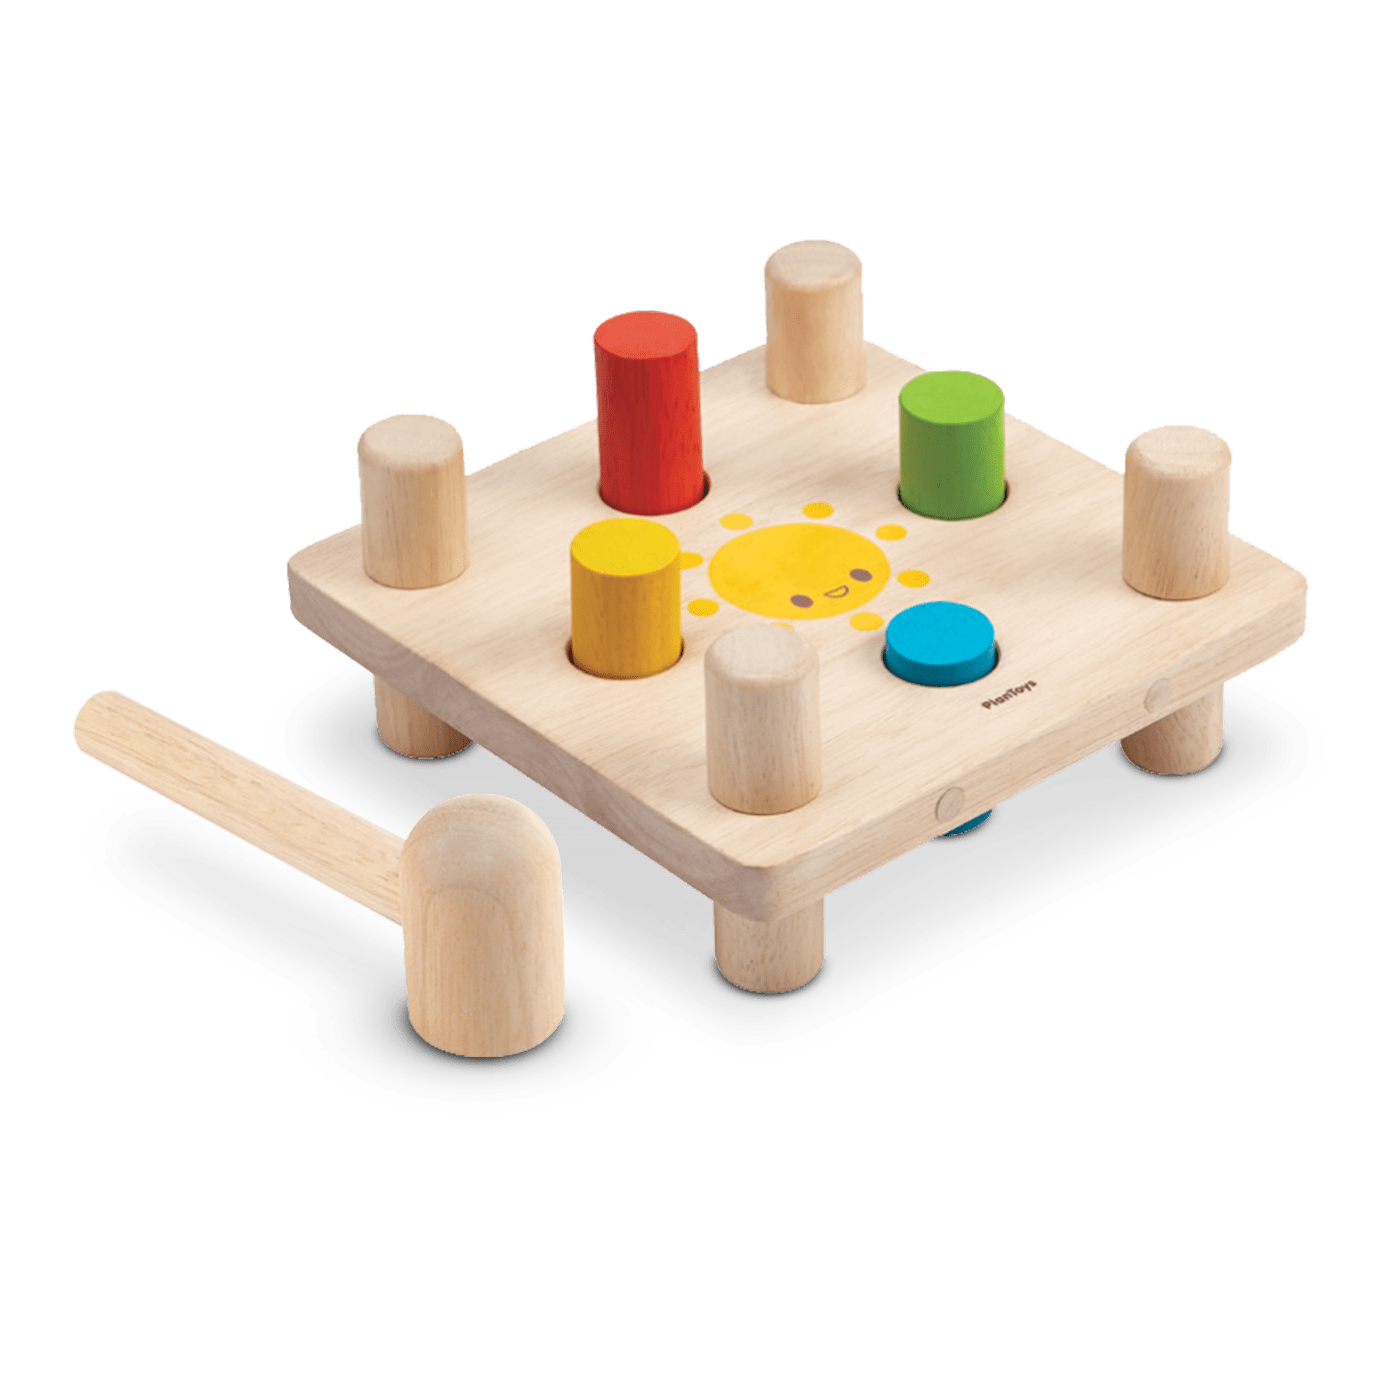 5126_PlanToys_HAMMER_PEG_Learning_and_Education_Fine_Motor_Cause_and_Effect_Coordination_Language_and_Communications_12m_Wooden_toys_Education_toys_Safety_Toys_Non-toxic_0.png